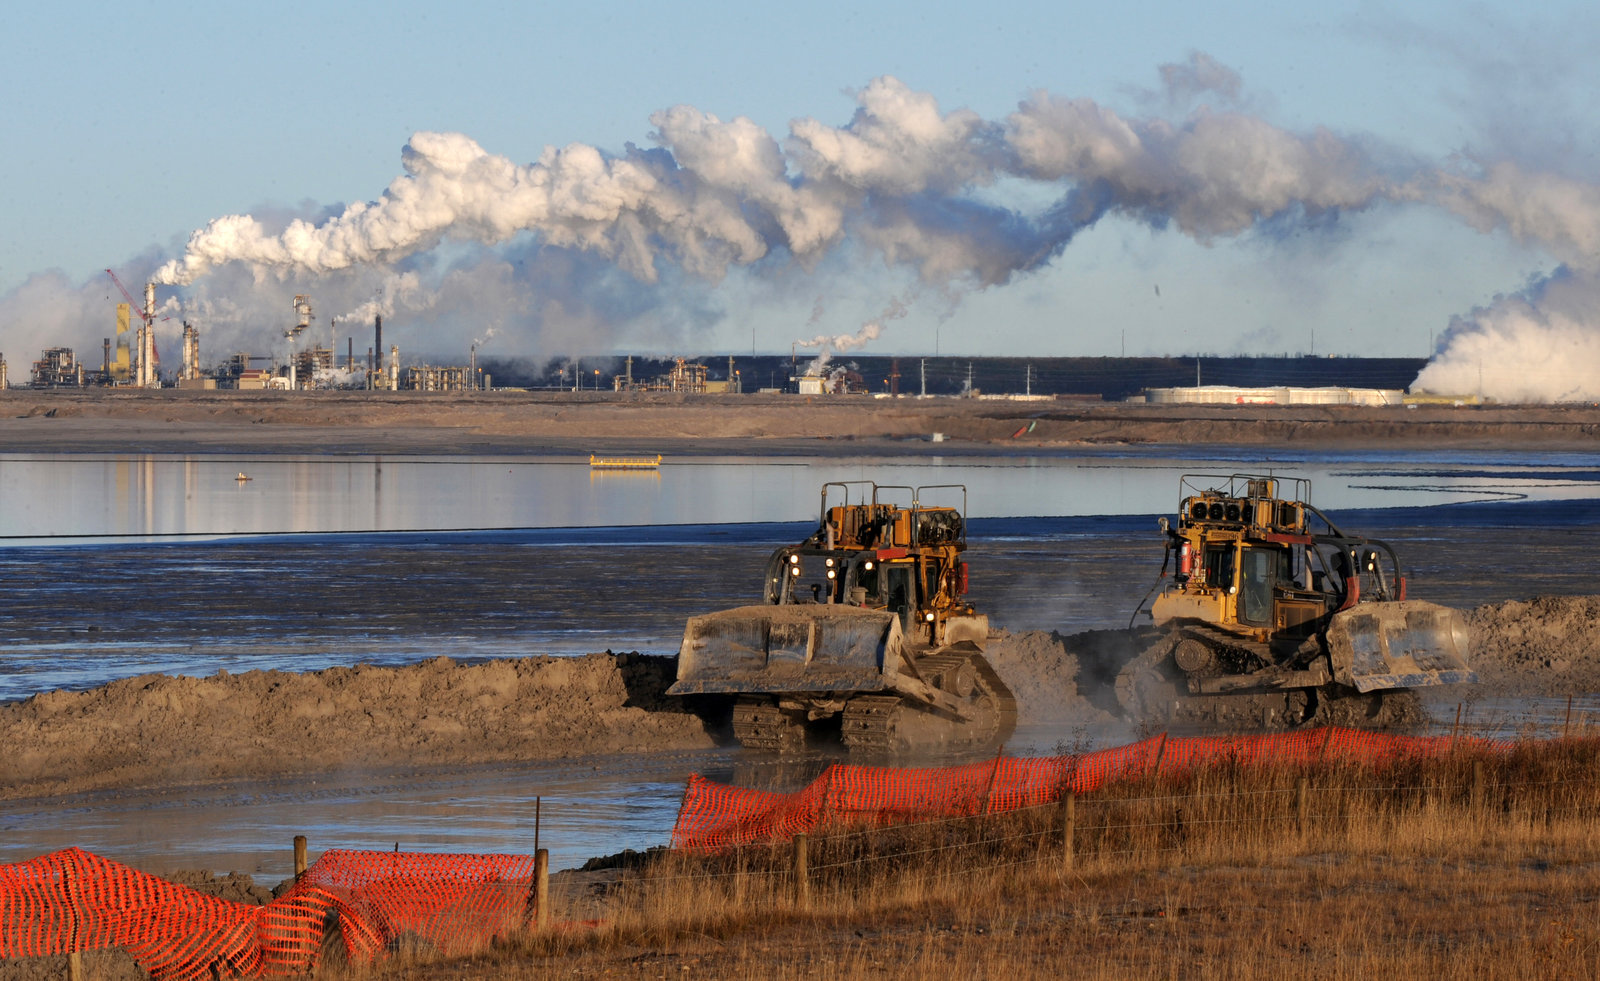 The Syncrude extraction facility in Alberta is one of Exxon's tar sands projects